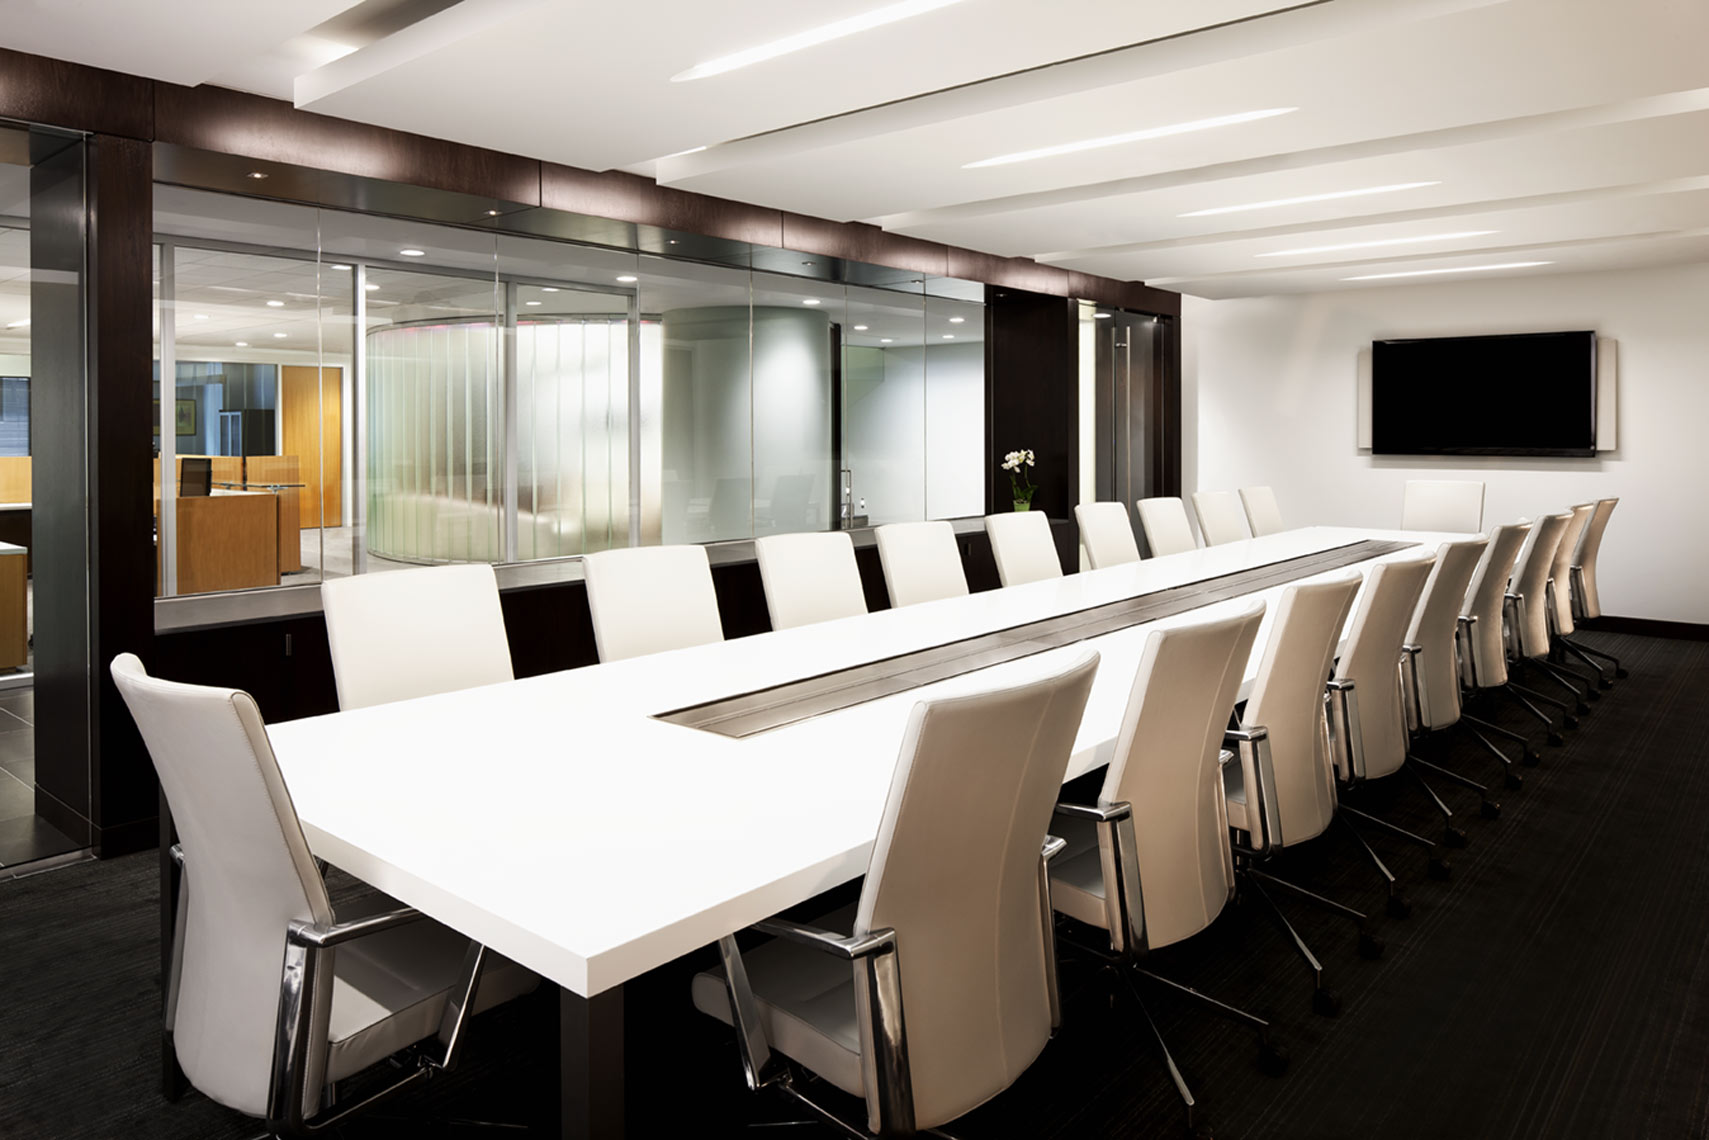 architectural photograph of an office building conference room by Dan Poyourow